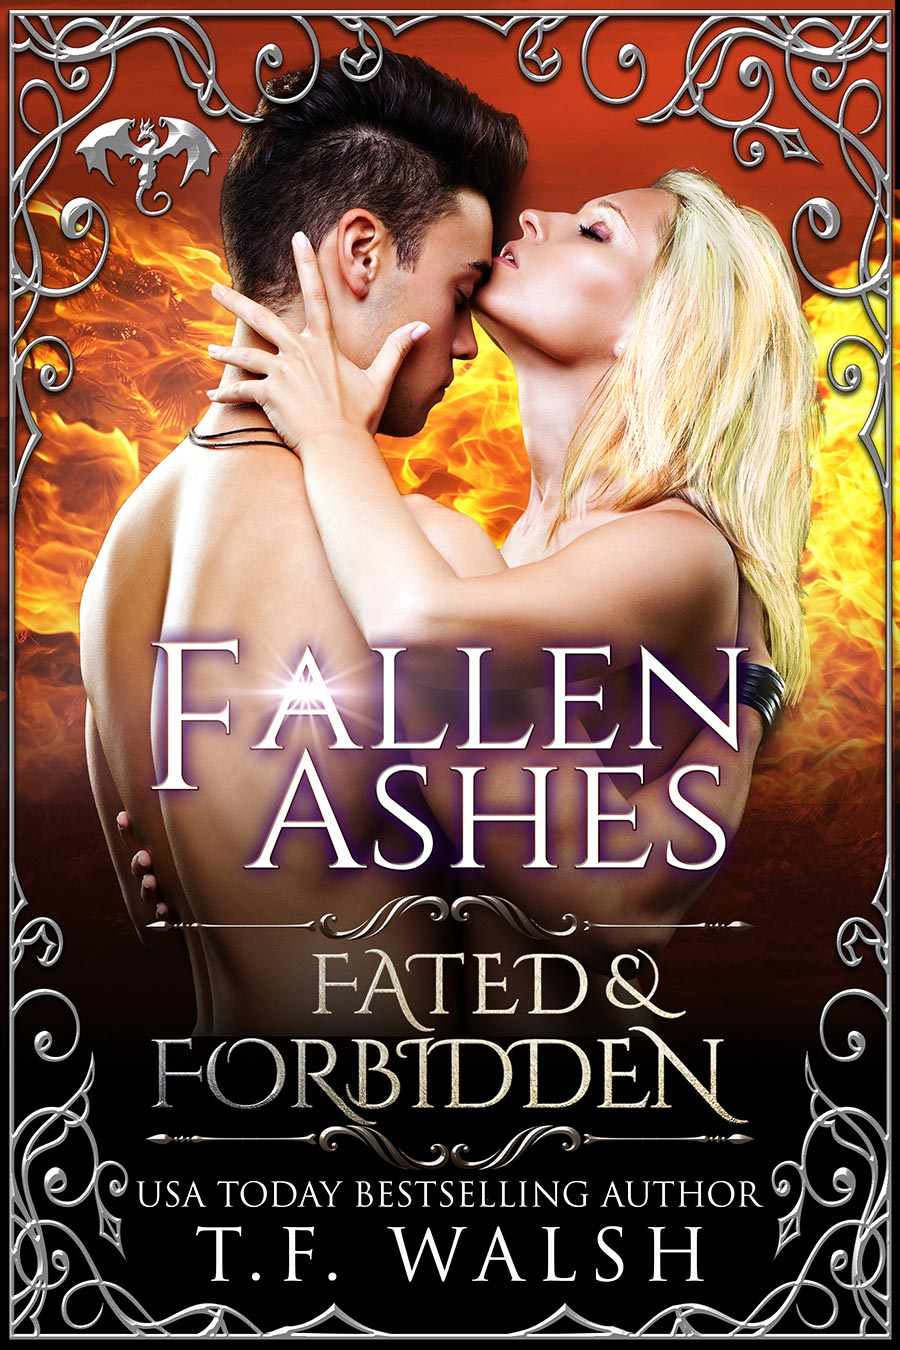 Fated-and-Forbidden---Fallen-Ashes---TF-Walsh---LETTERS.jpg